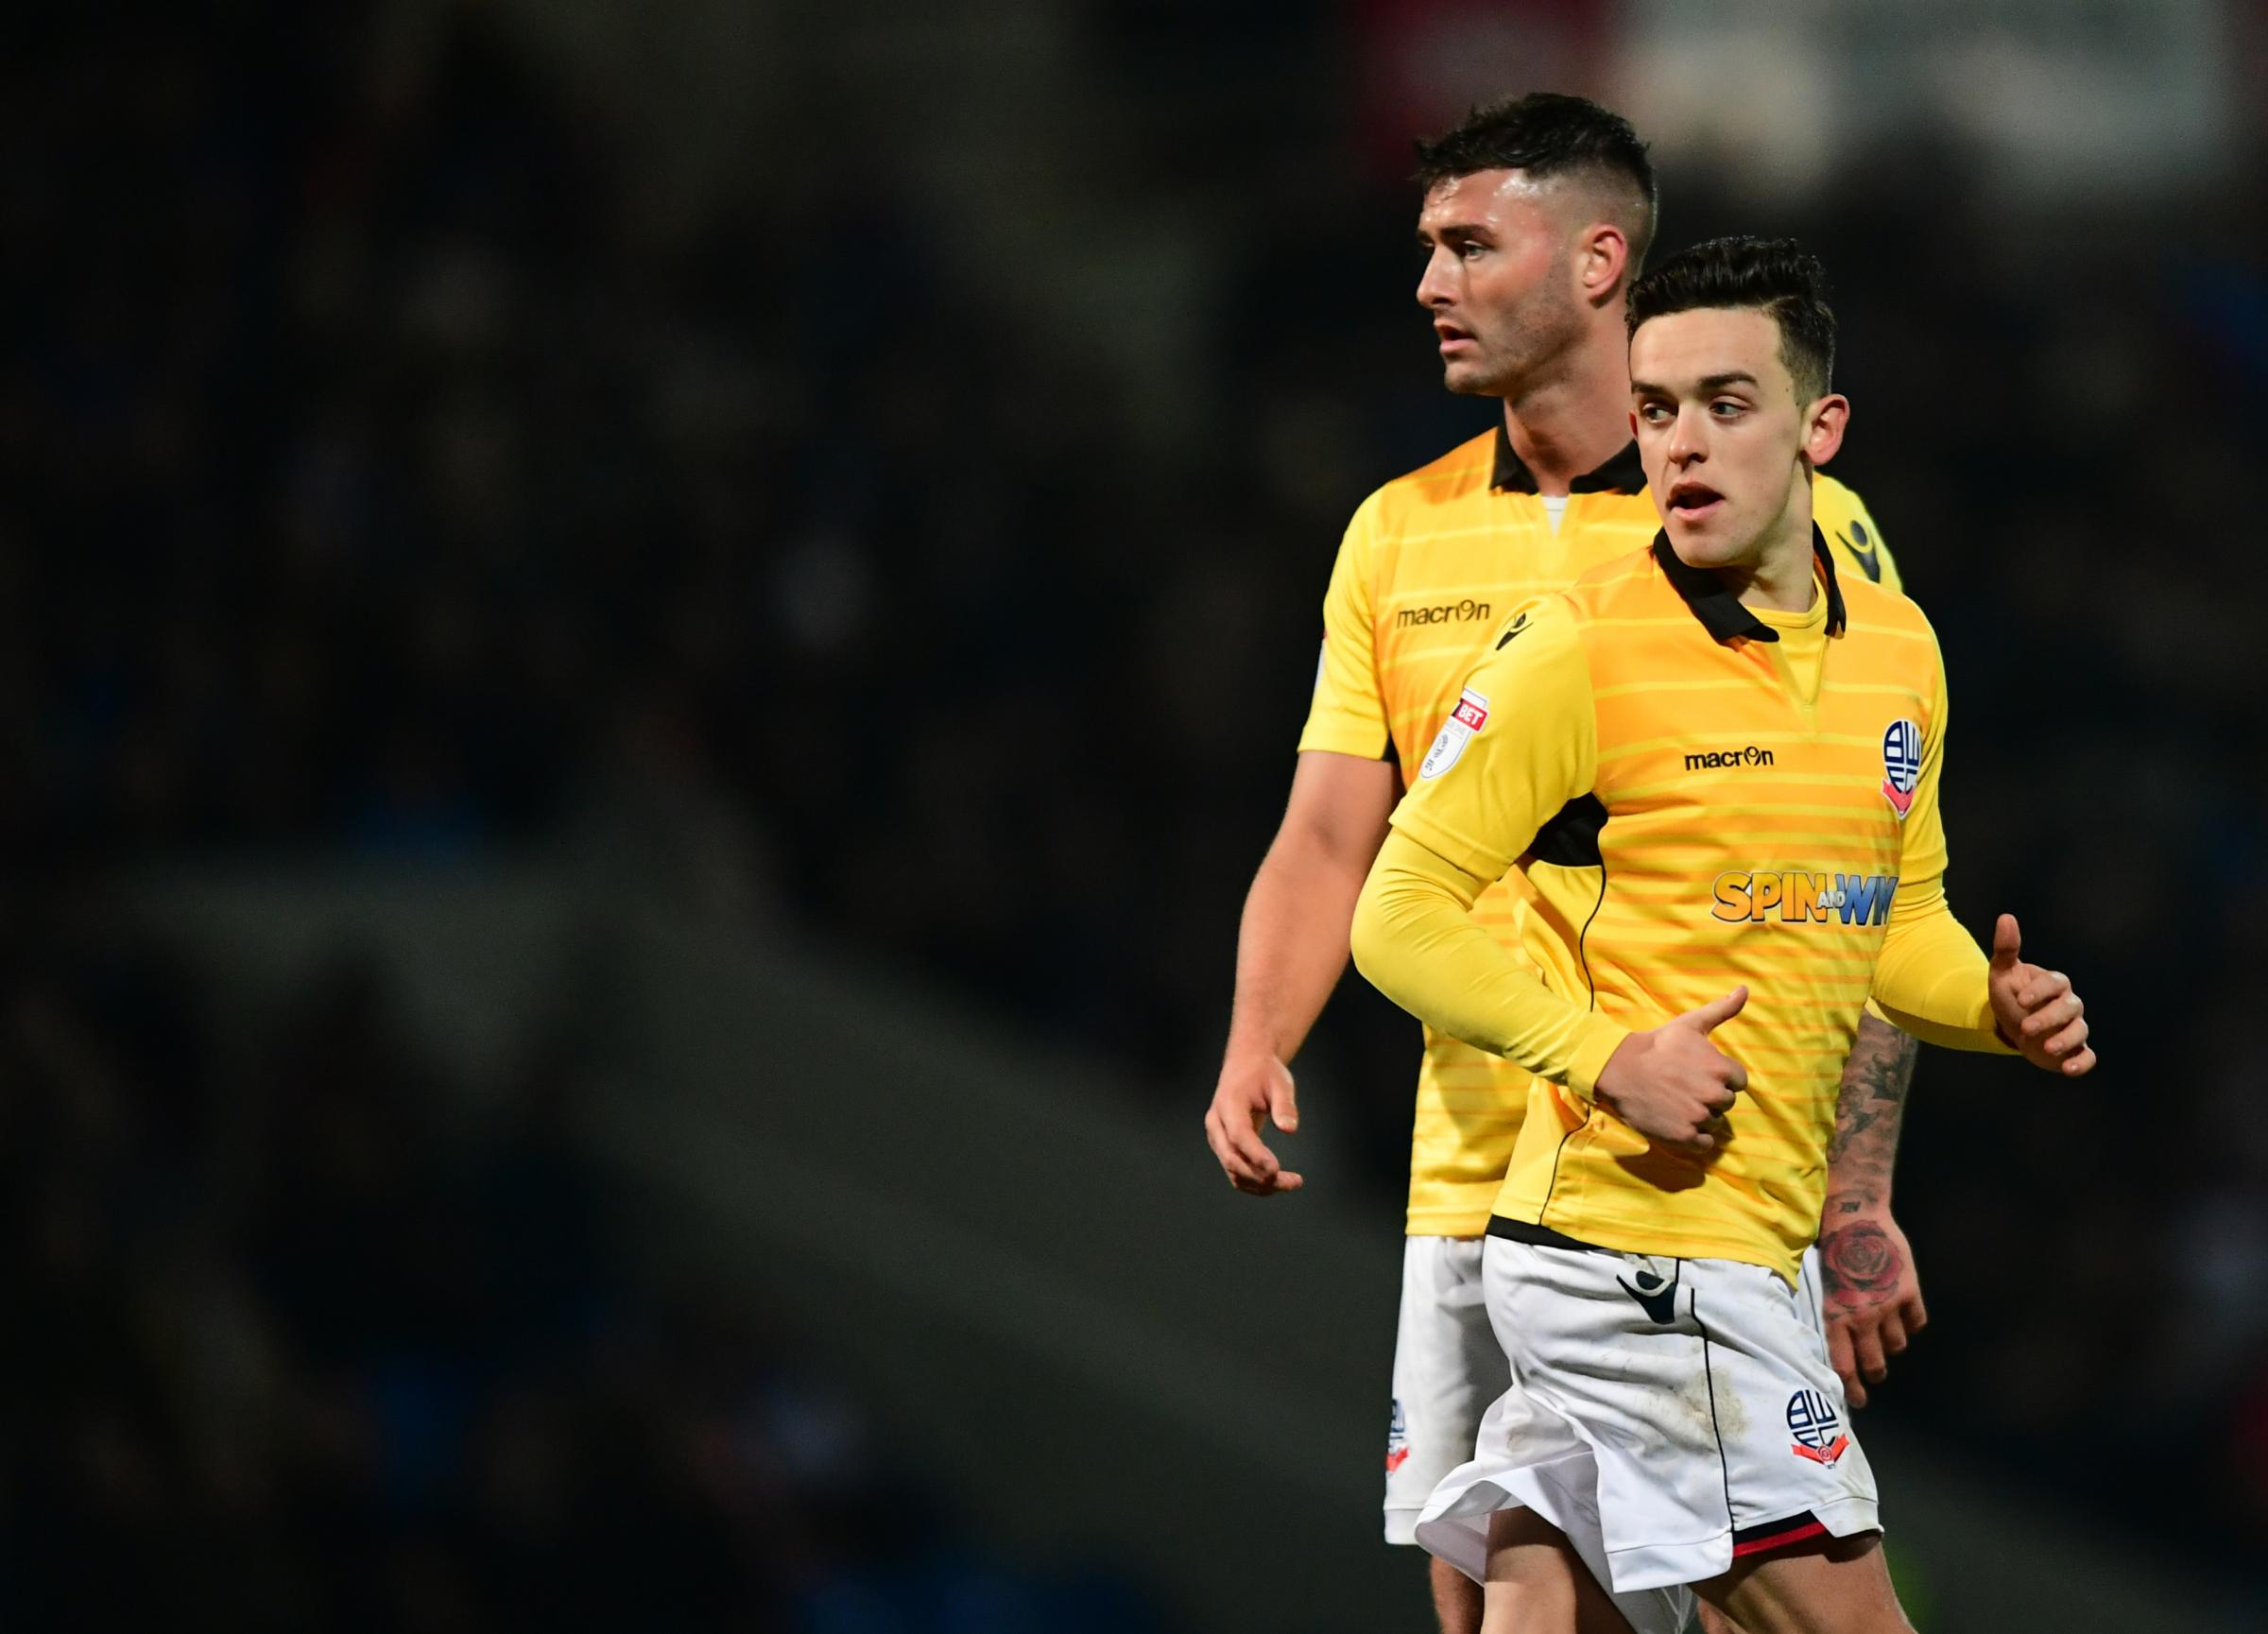 ONE IN, ONE OUT: Gary Madine, left, has joined Cardiff City but Zach Clough has returned to the Macron